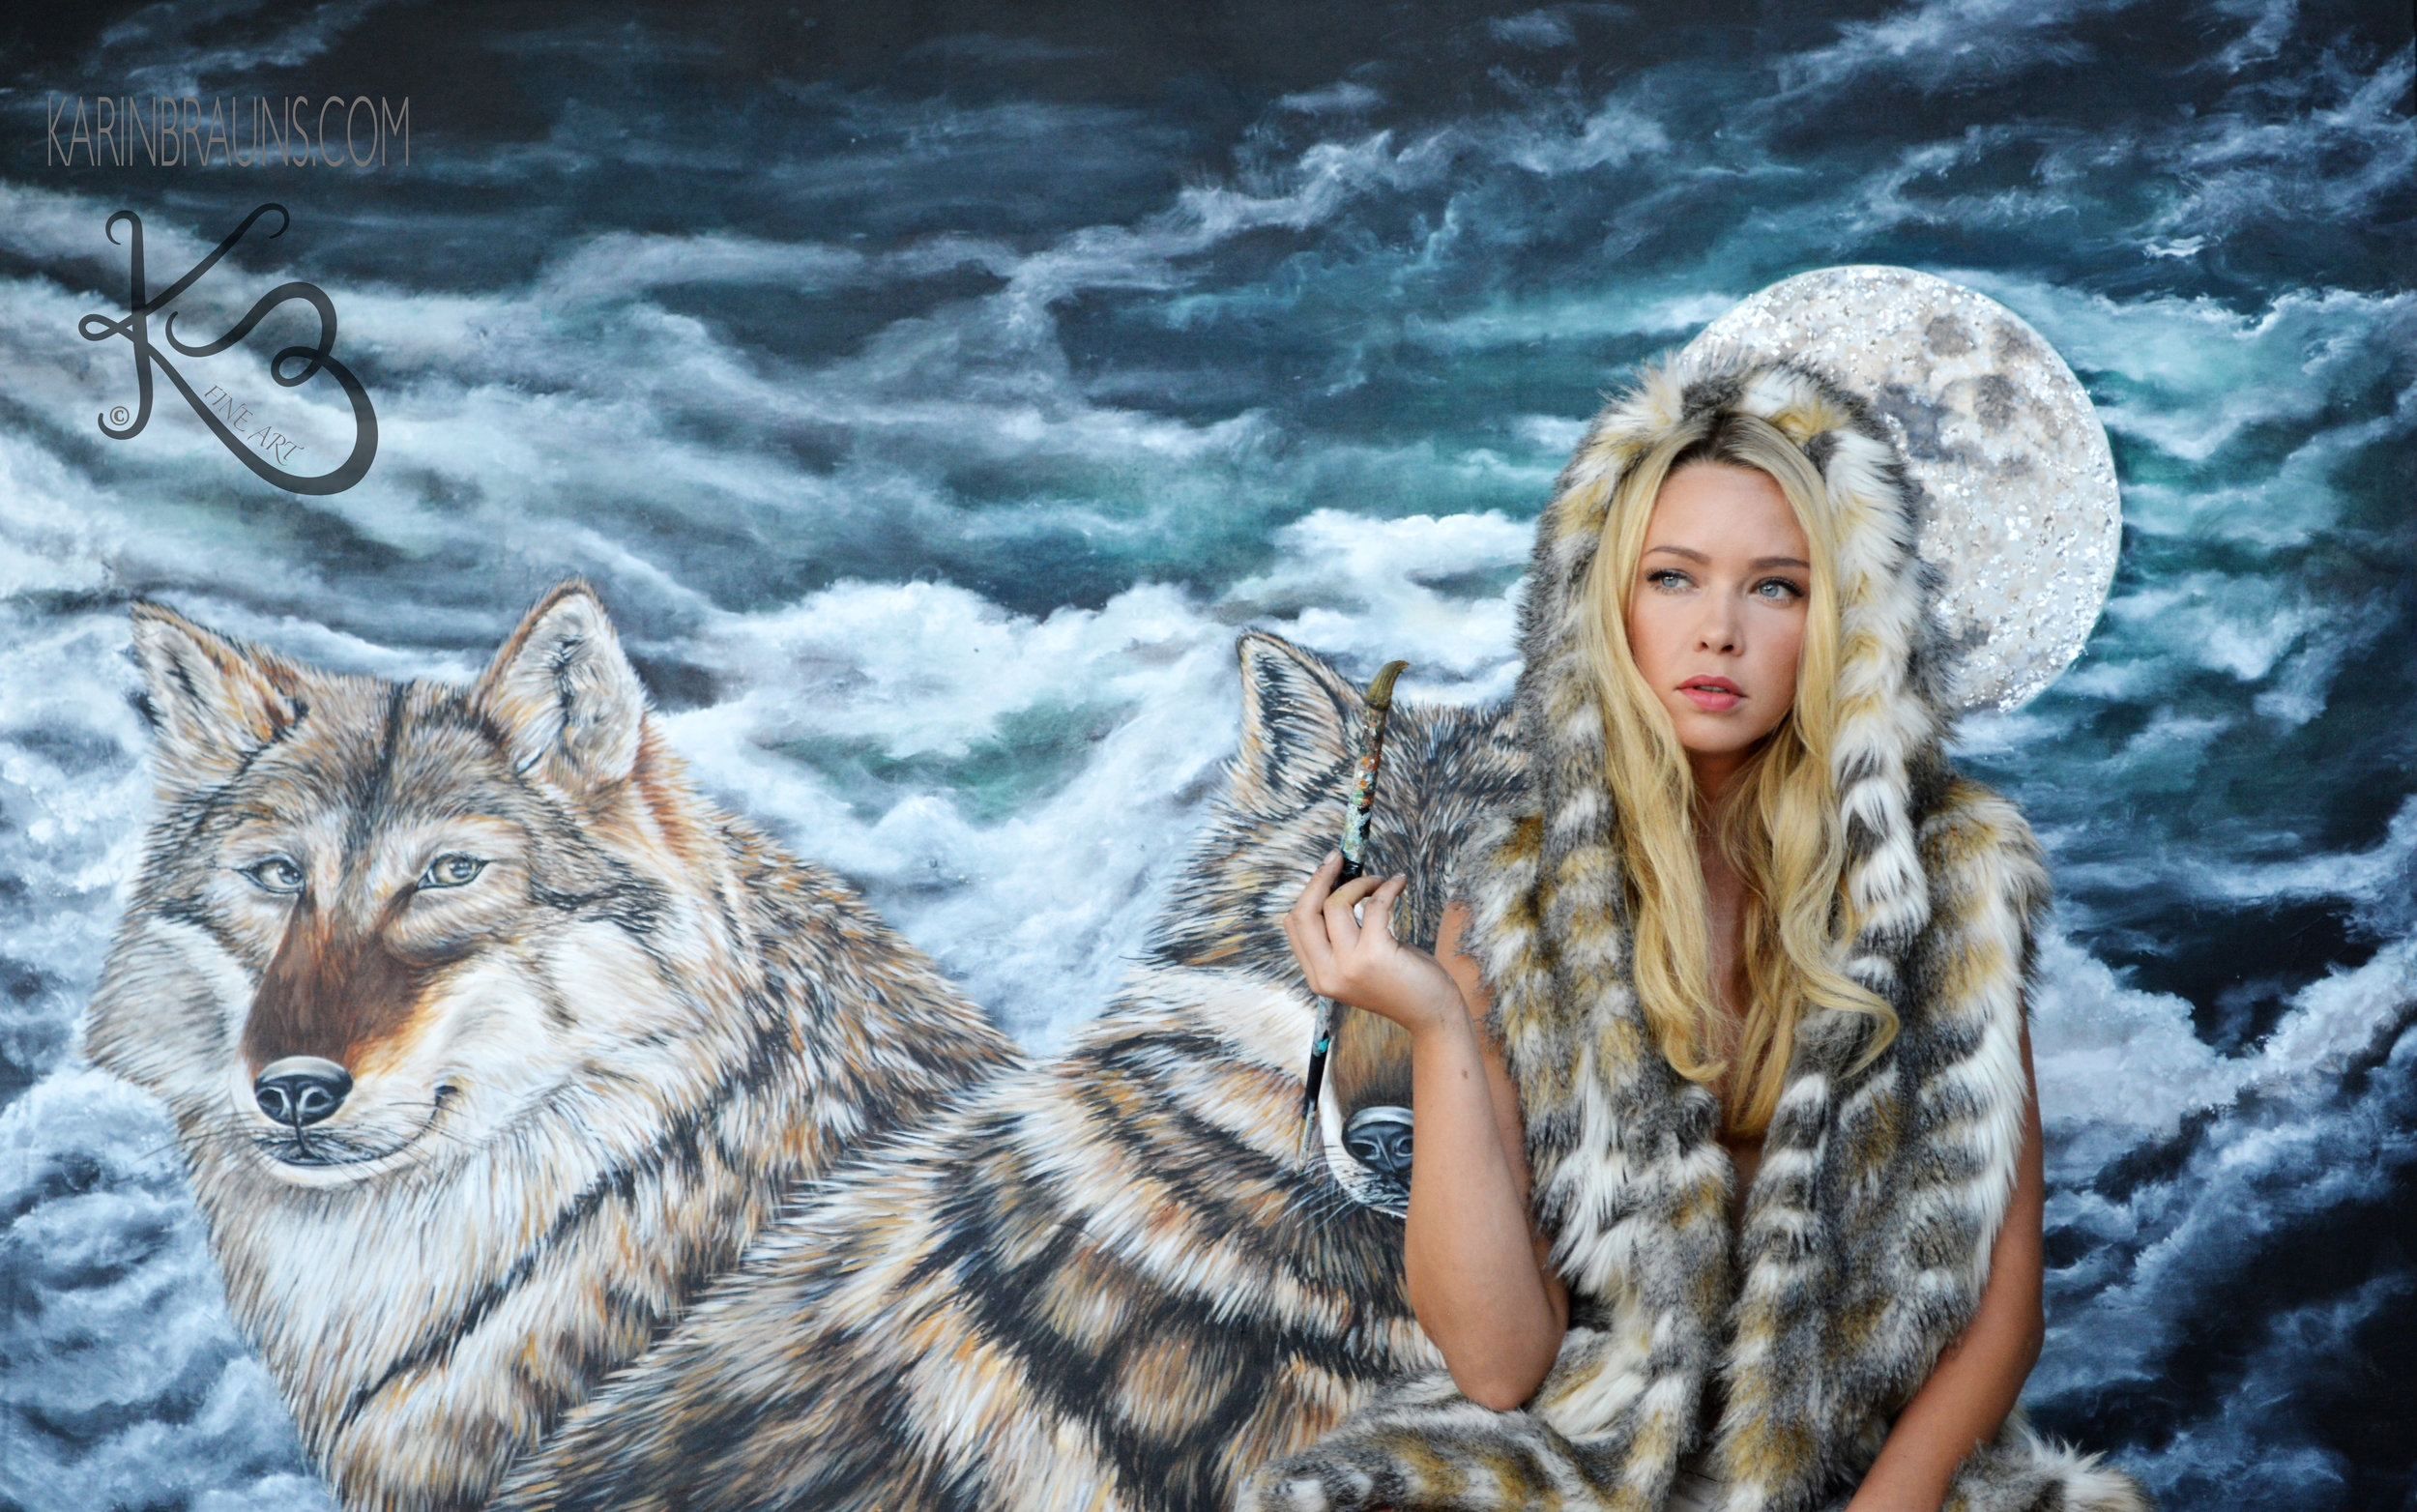 Karin with her Wolves